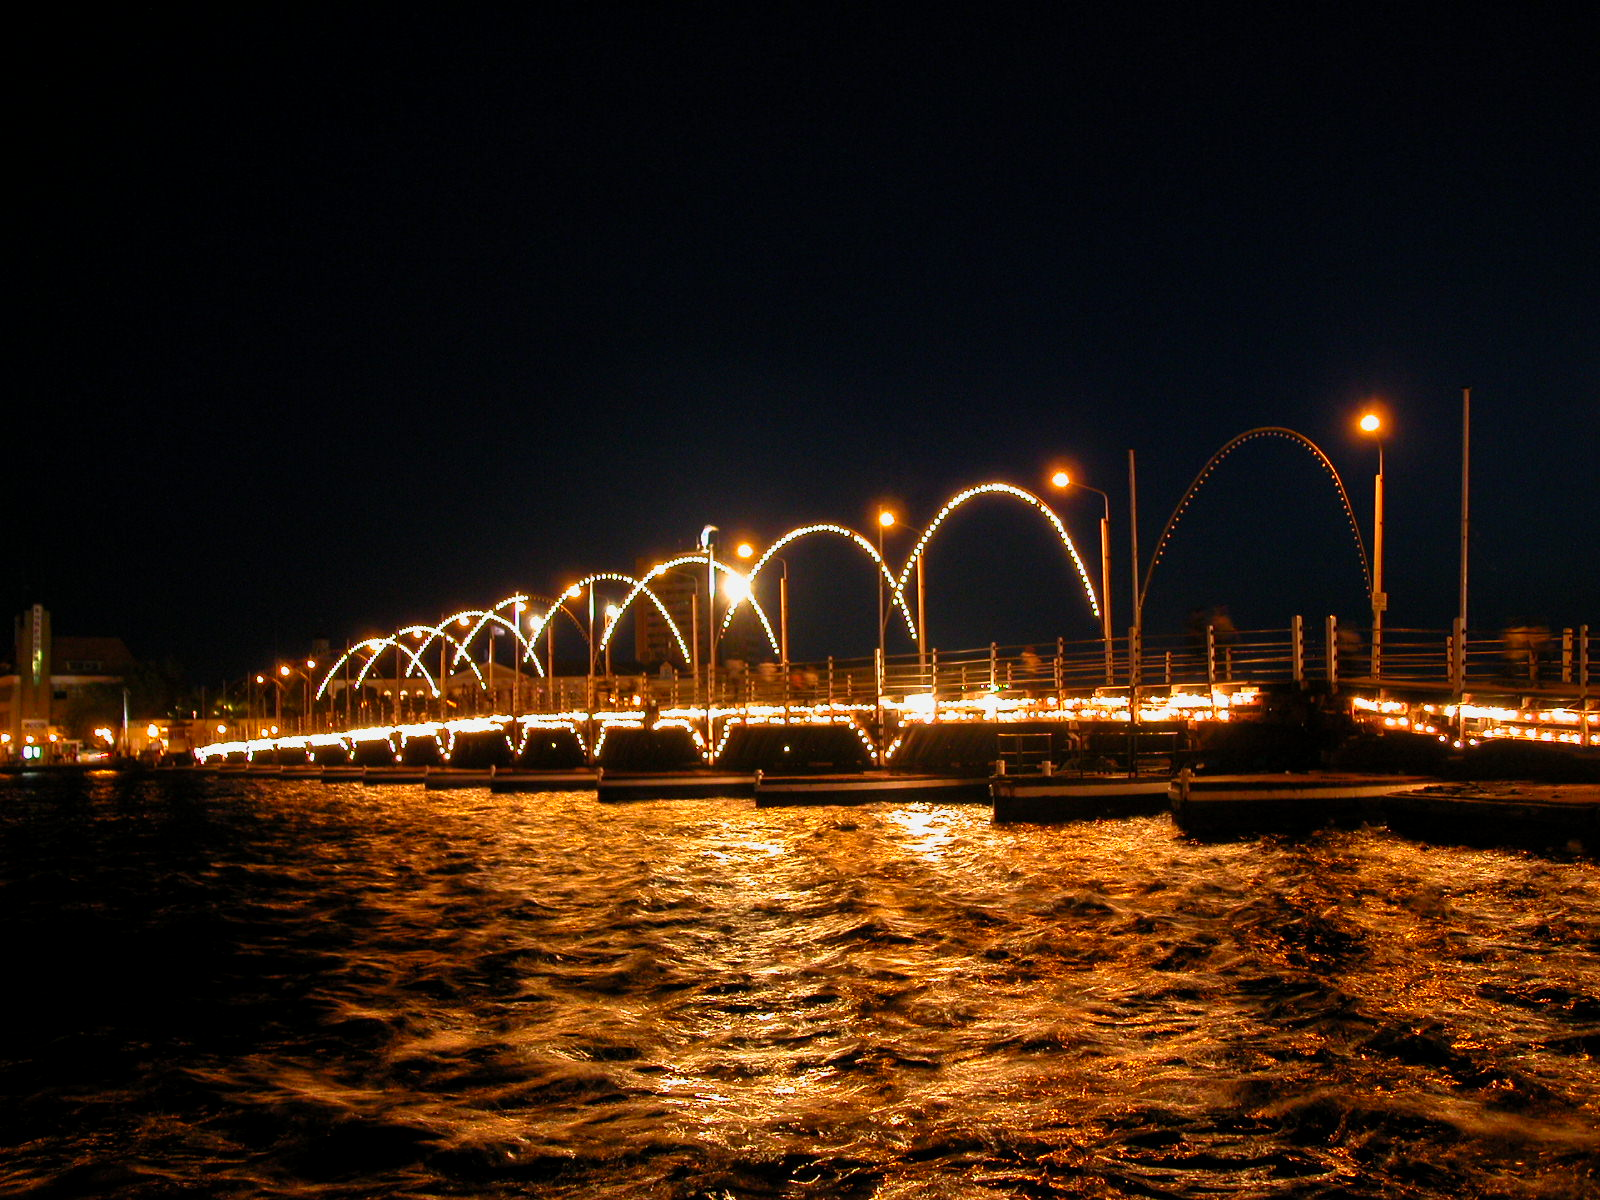 jacco curacao willemstad architecture exteriors bridge arch arches light lights waterscape night